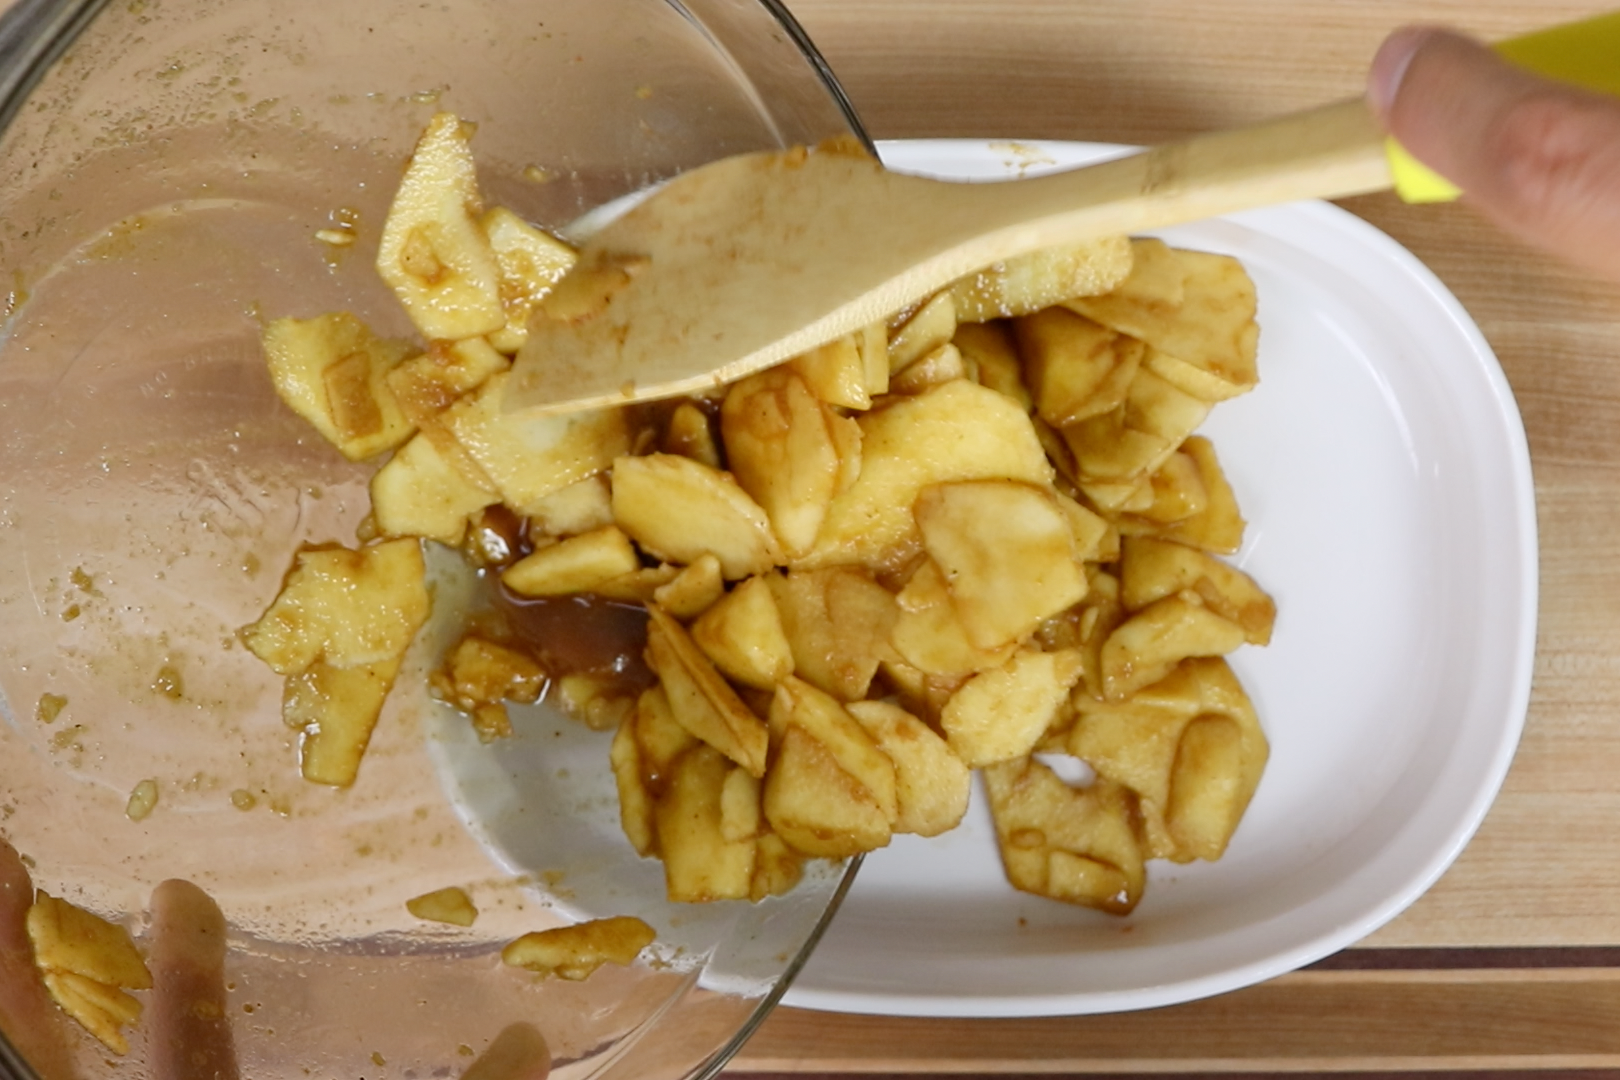 5. Pour apple mixture into the prepared baking pan. Use the spatula to smooth apples into an even layer. -